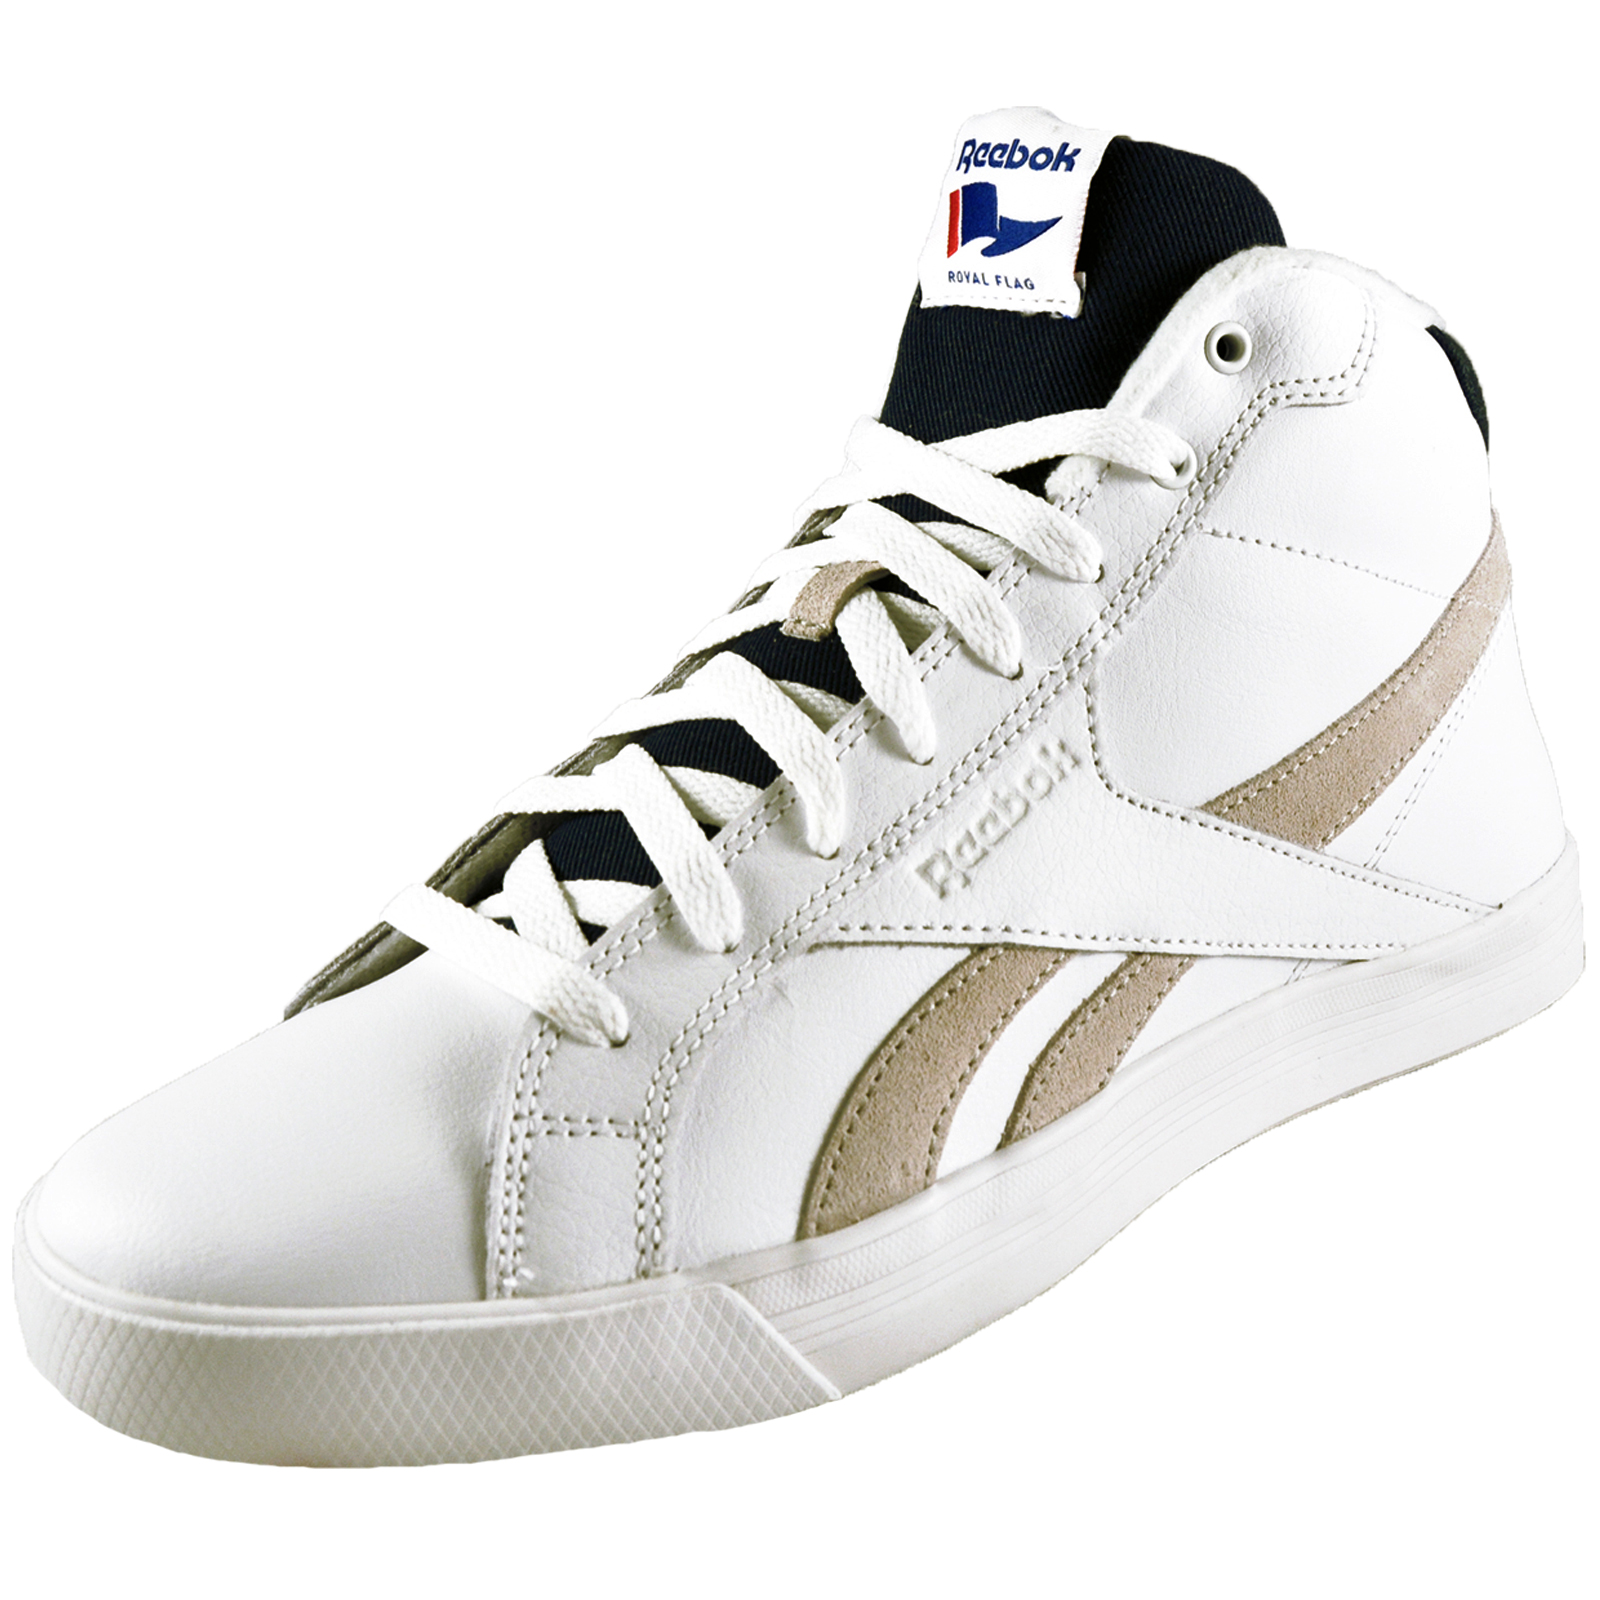 a55677065f5 Details about Reebok Royal Complete Classic Men s Causal Fashion Retro Mid  Trainers White B Gr